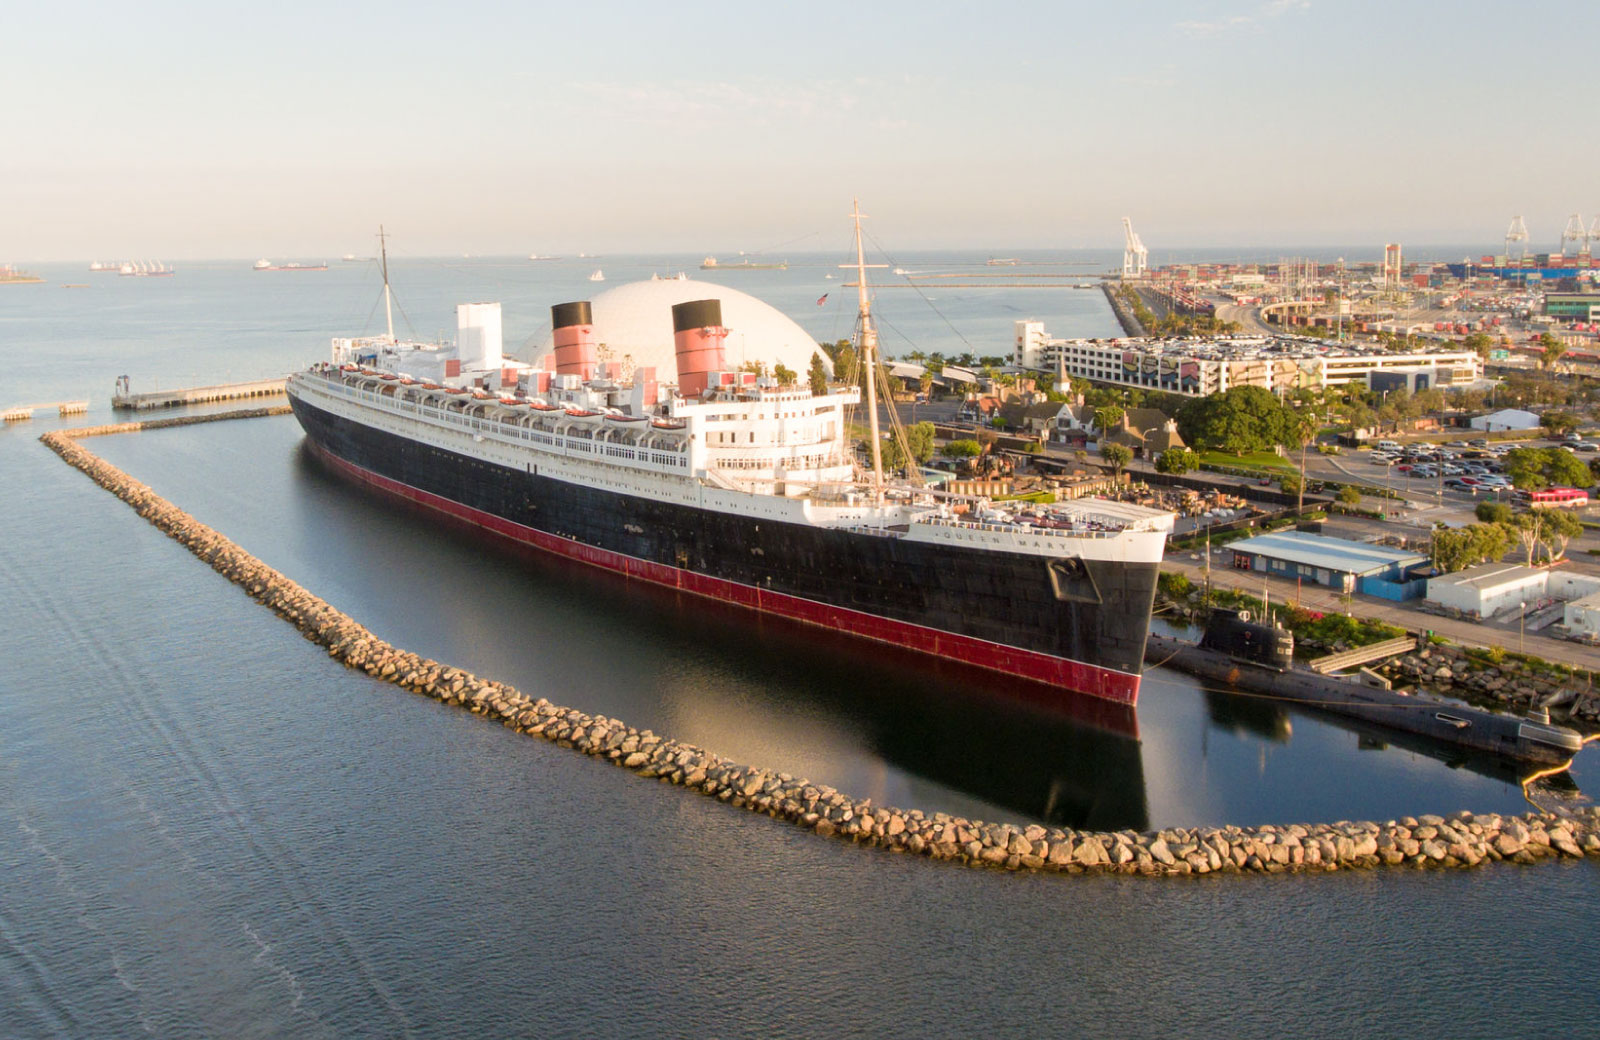 skyview of queen mary ship